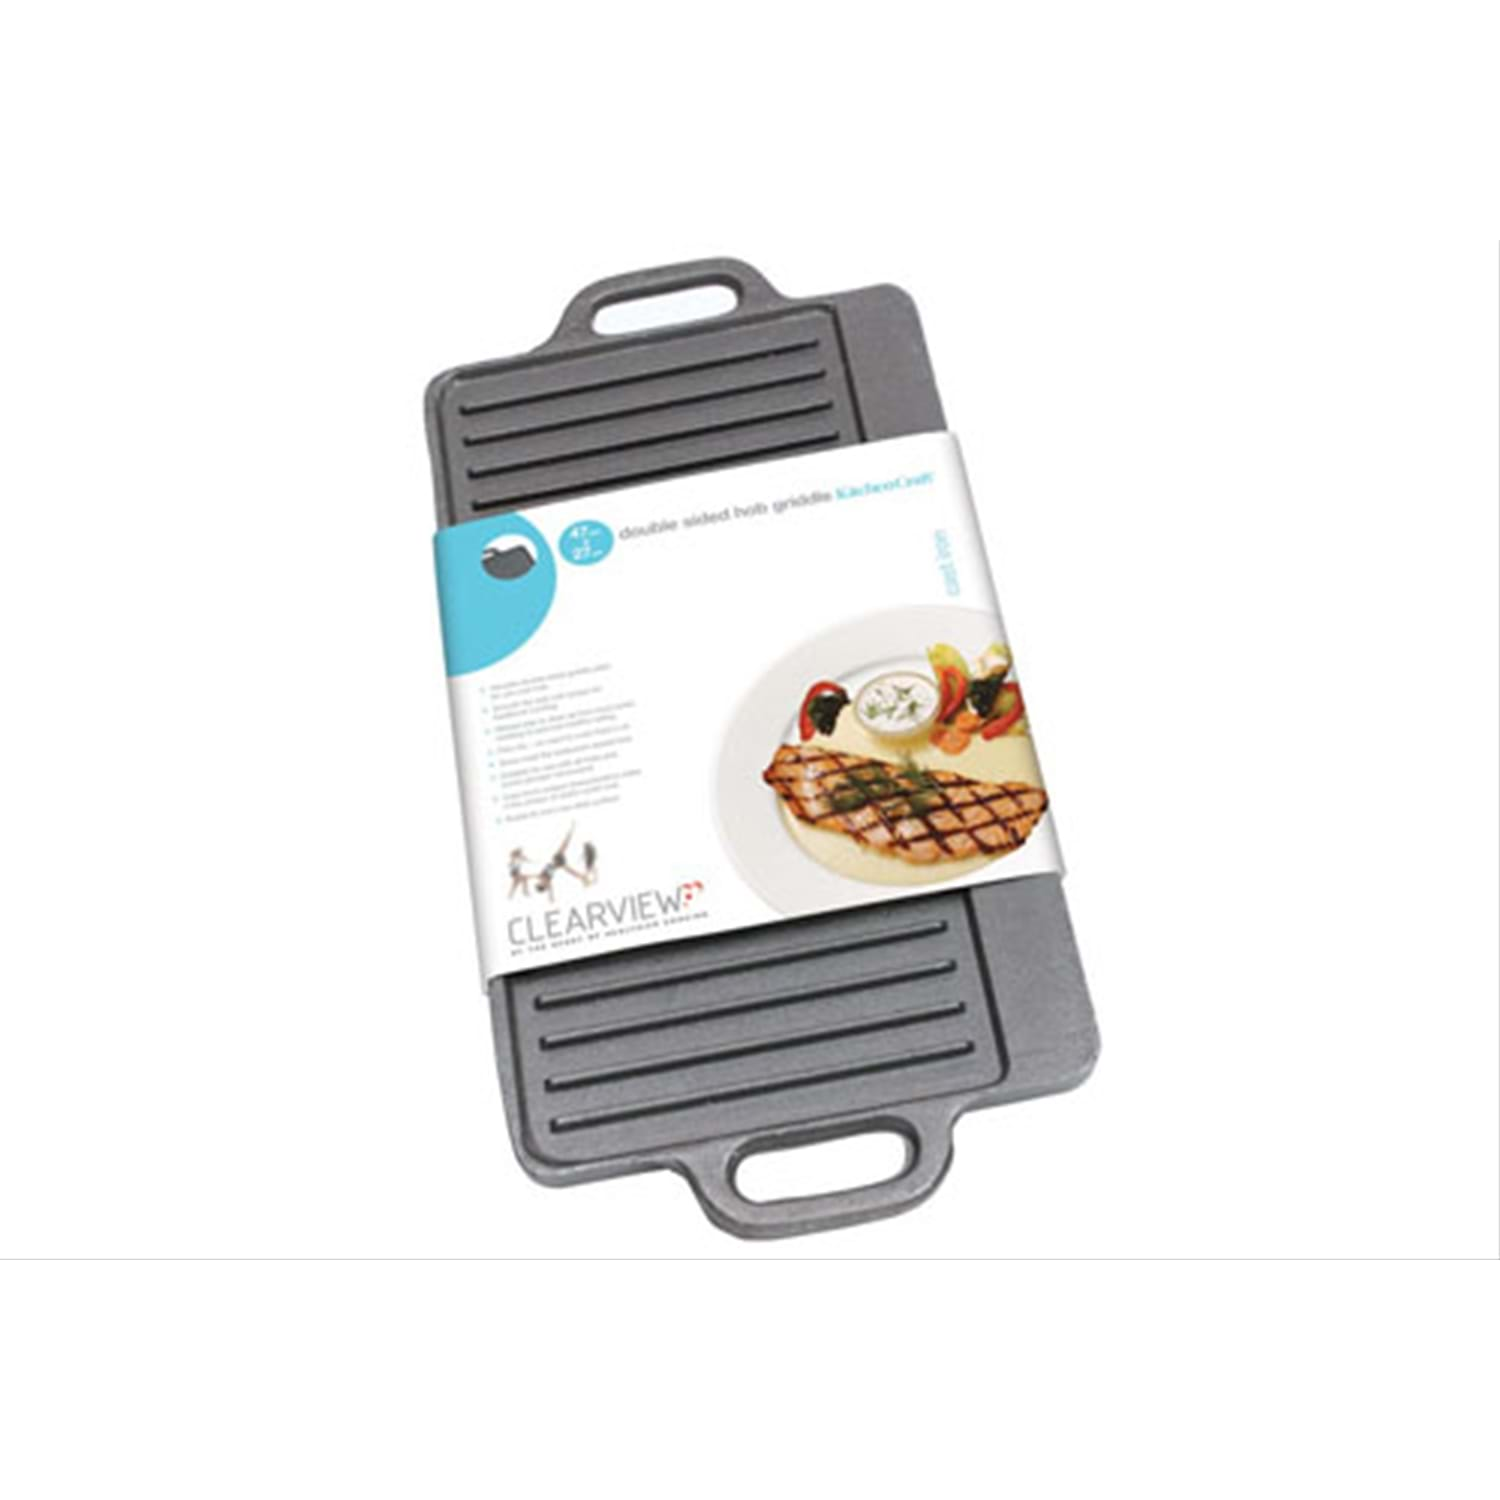 Image of Clearview Cast Iron Reversible Griddle